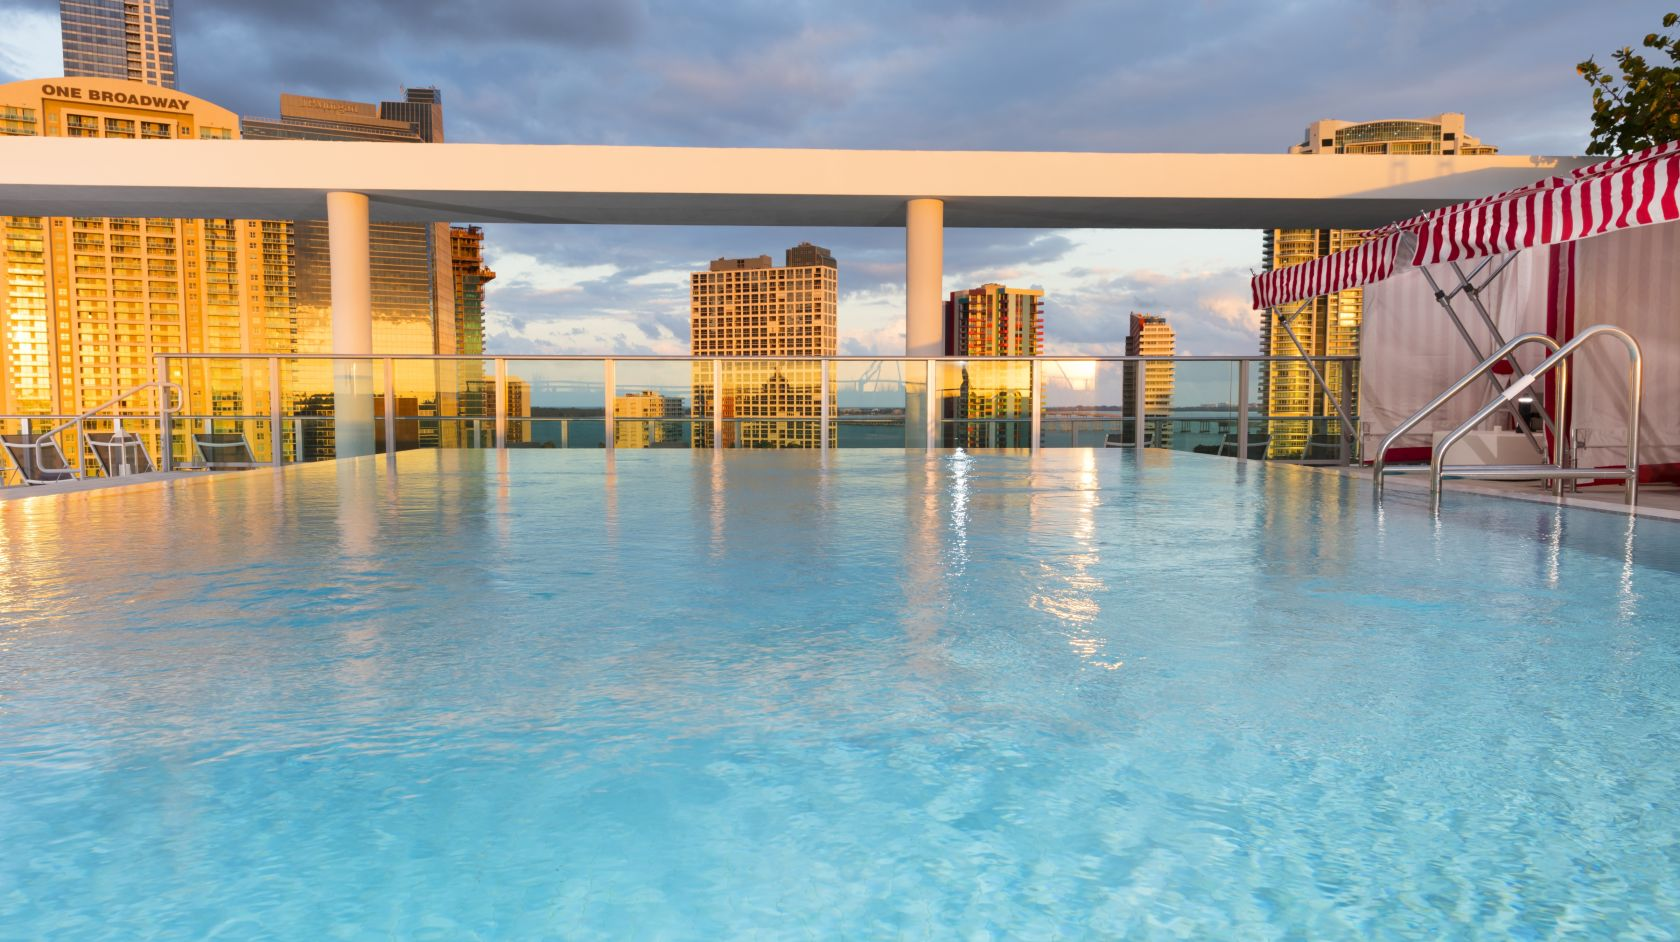 outdoor pool at Novotel Miami Brickell hotel